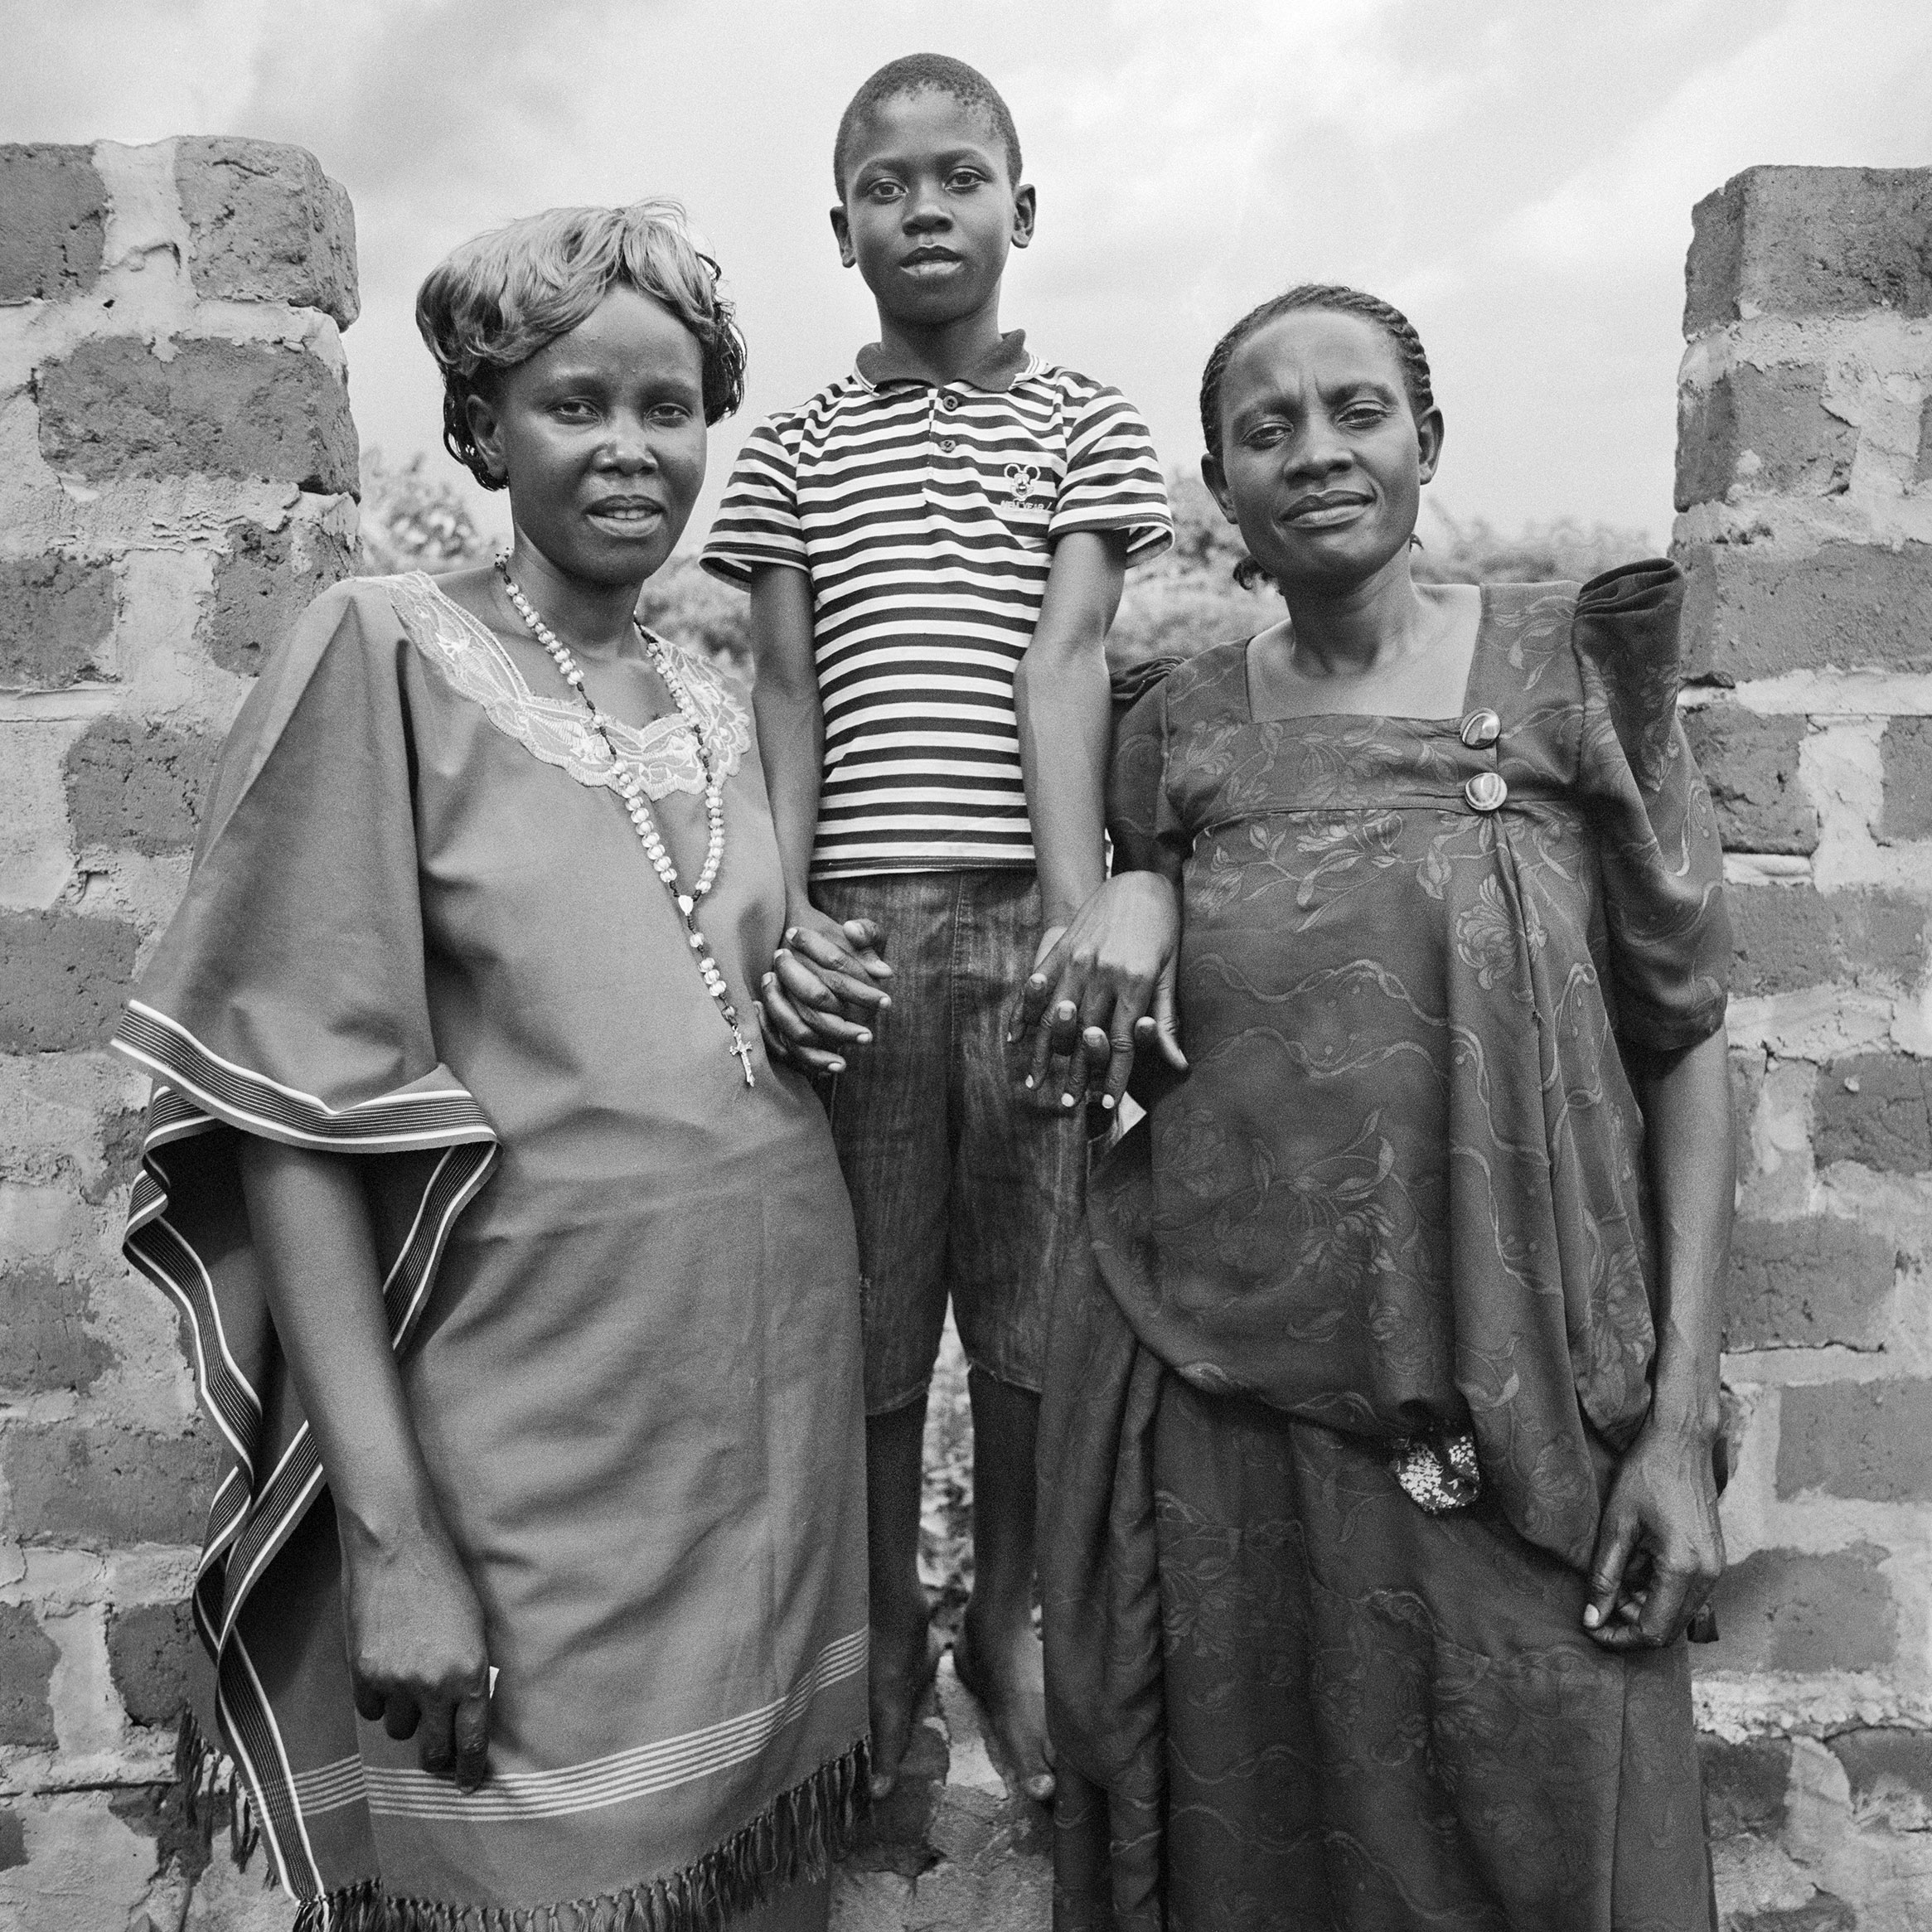 WPC members (from left to right)Anyango Florence, Mpiima Zacharious, and Athieno Vena.   These two women are sisters who have joined together to form a nontraditional family. They are raising their nephew in the middle, Mpiima,as their own son because he lost both of his parents at a young age. Both Florence and Vena are teachers at BESO Junior School and Mpiima excels in his studies thanks to their support.